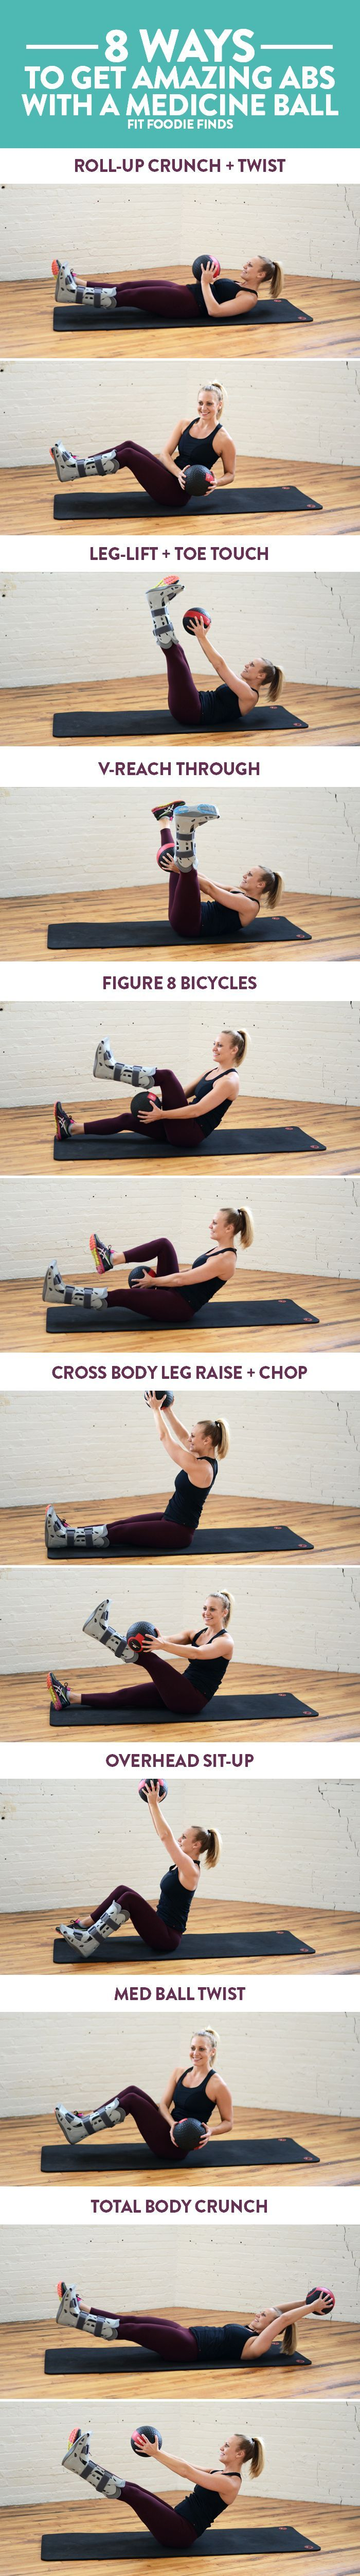 cool 8 Ways to Get Amazing Abs with a Medicine Ball